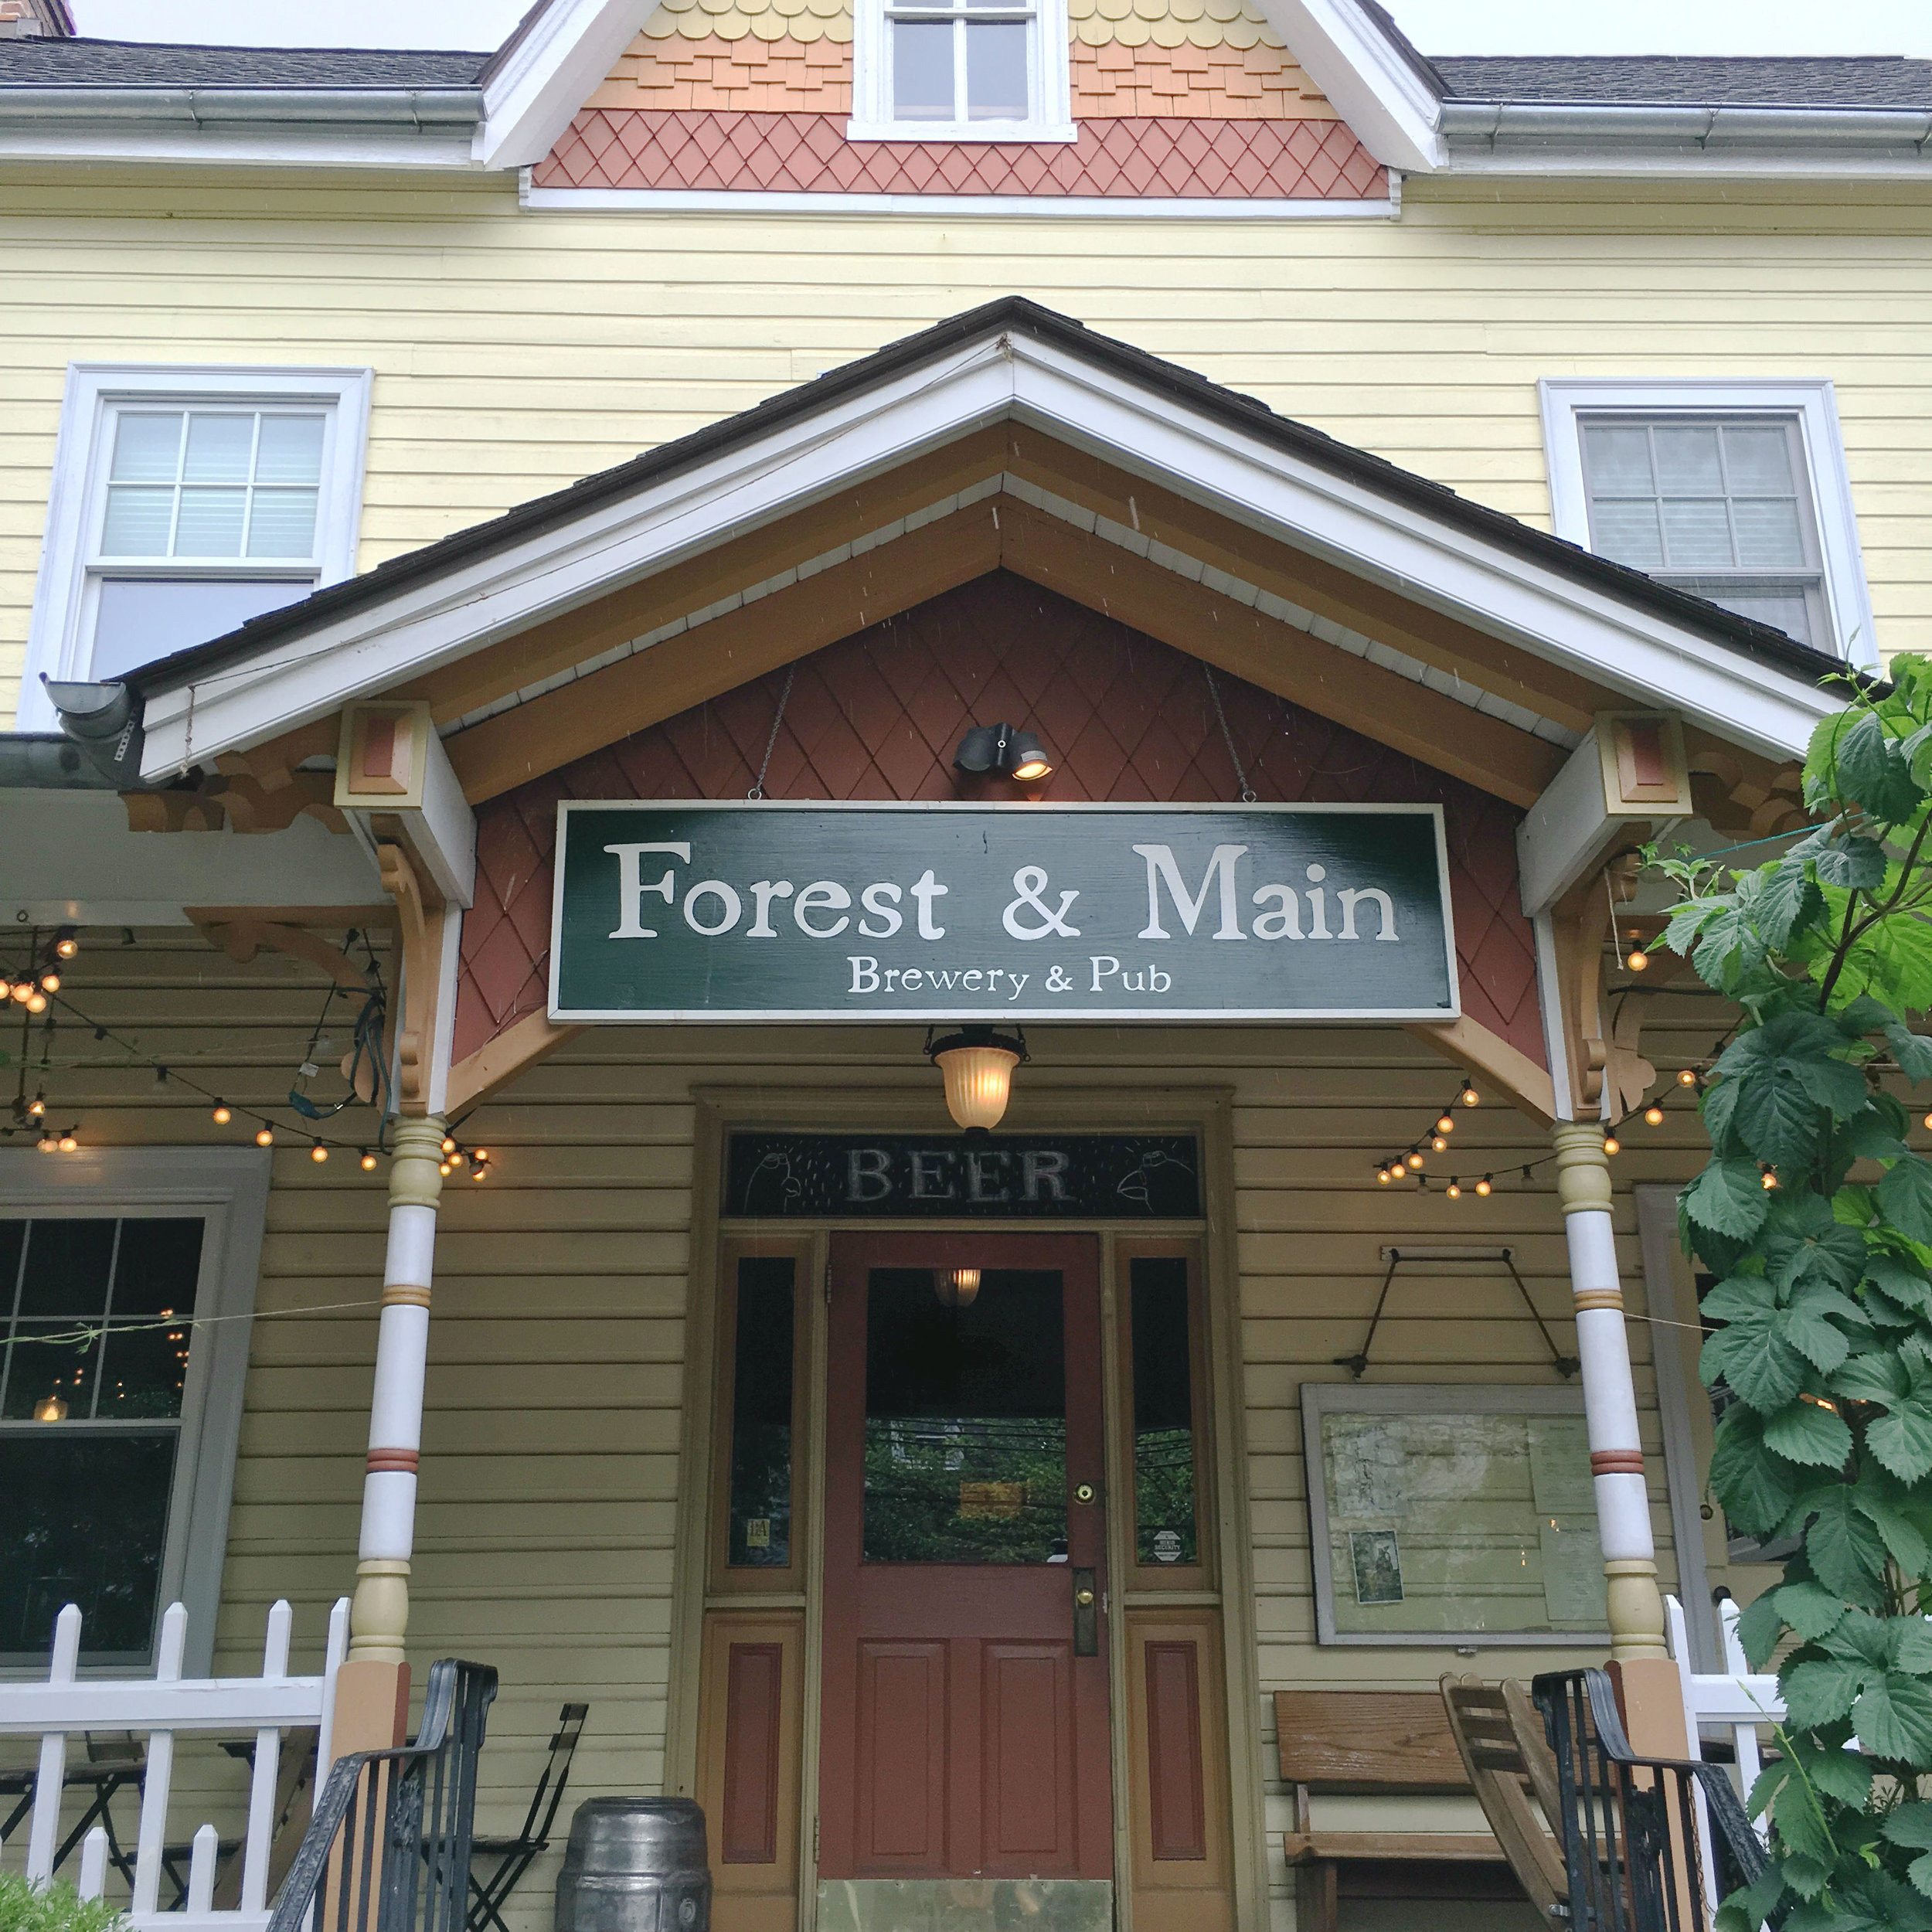 A Visit to Forest & Main Brewery